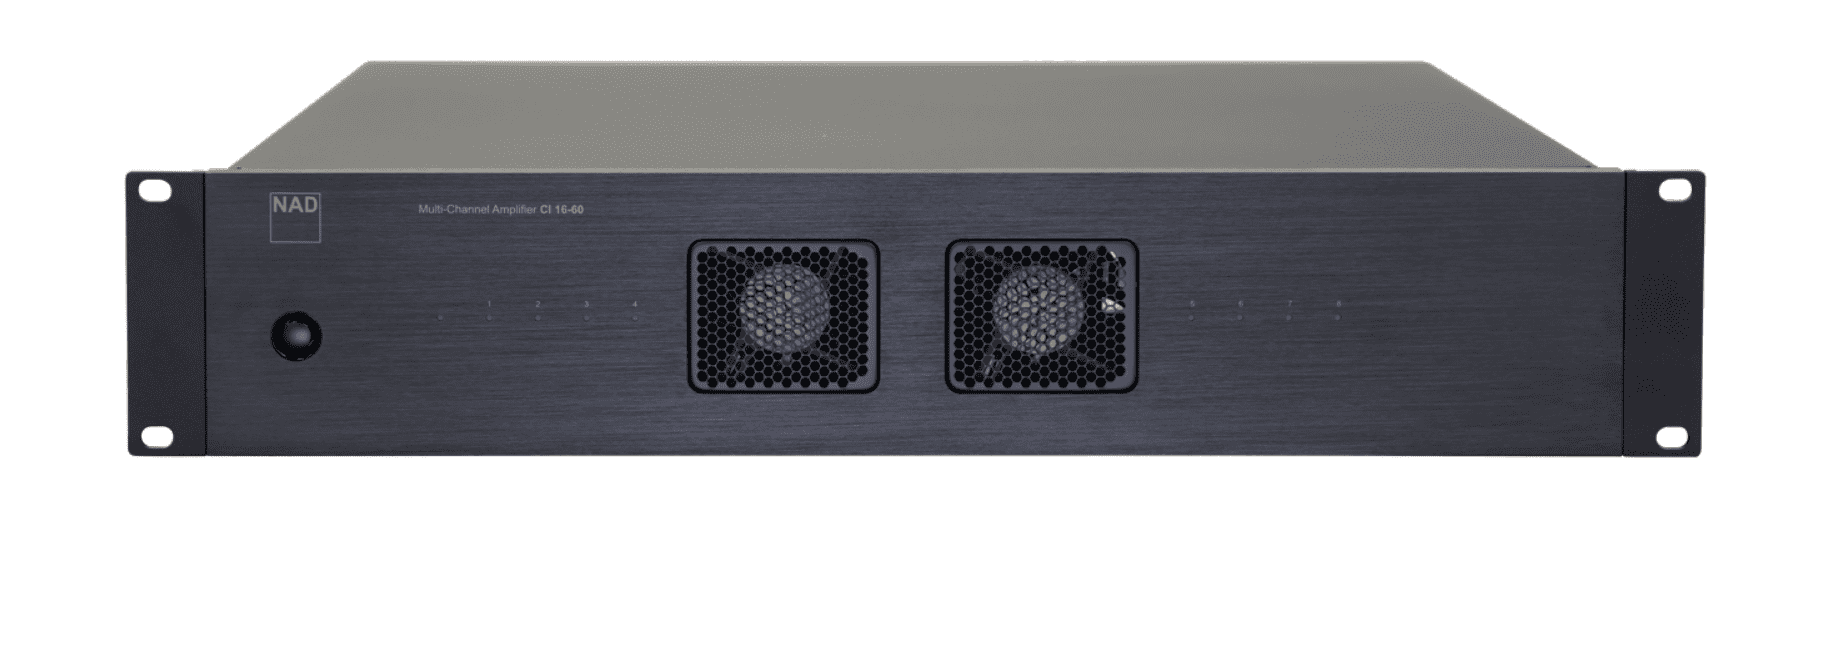 NAD Launches CI 16-60 DSP Amplifier